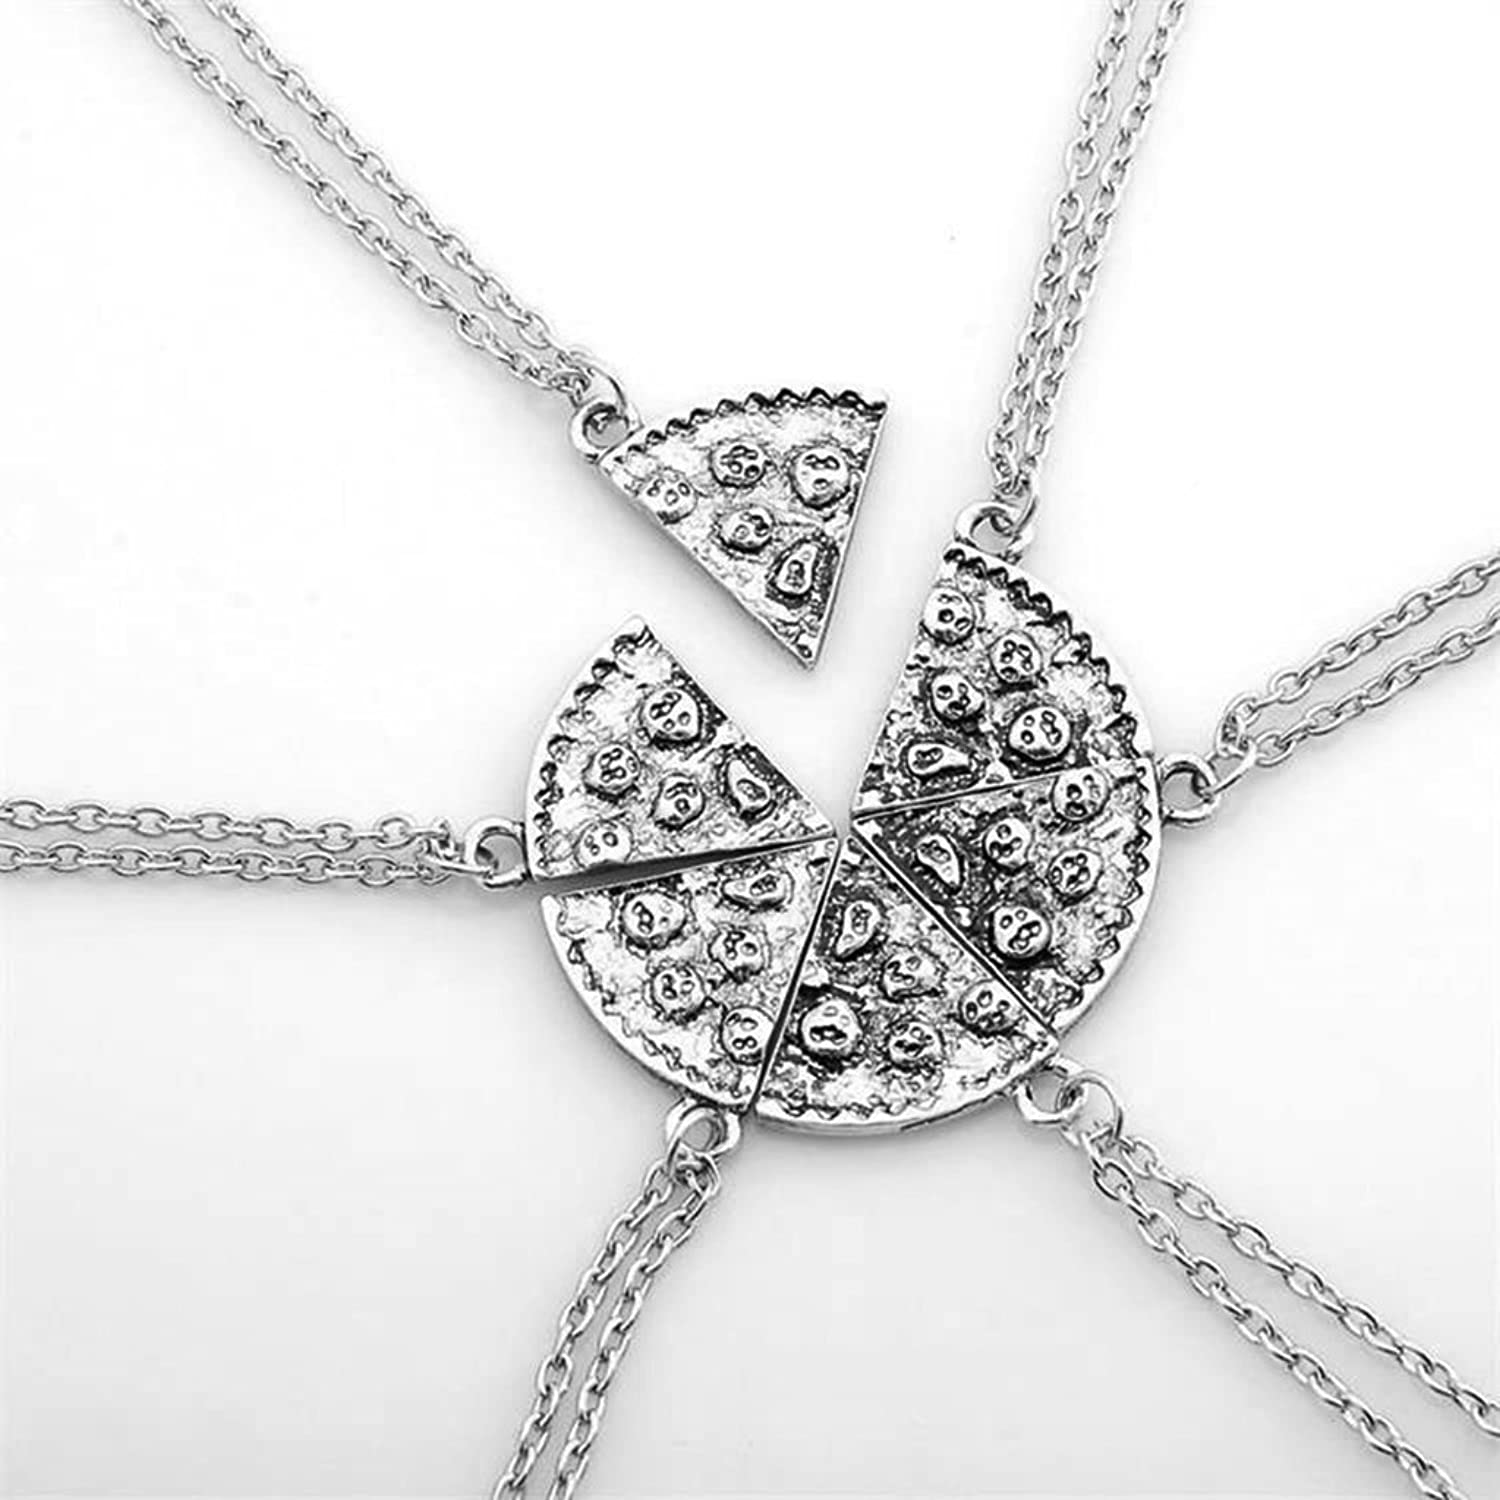 double lockets friend its at amazon by broken dp buy in rhinstones necklaces parts pendant online heart india best low prices